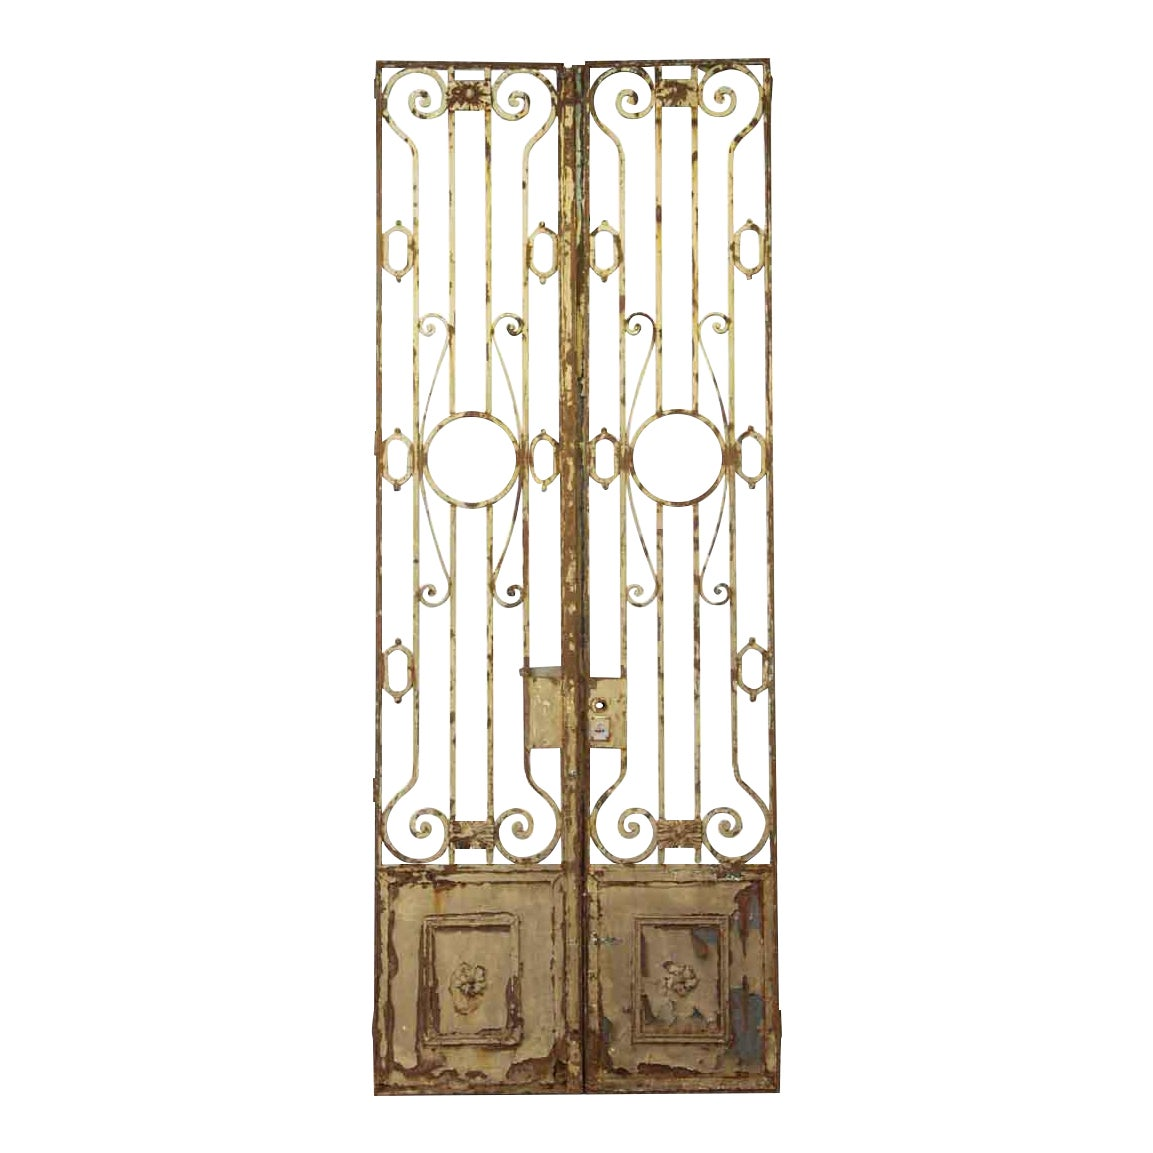 French Chateau Wrought Iron Tall Entry Doors A Pair Chairish